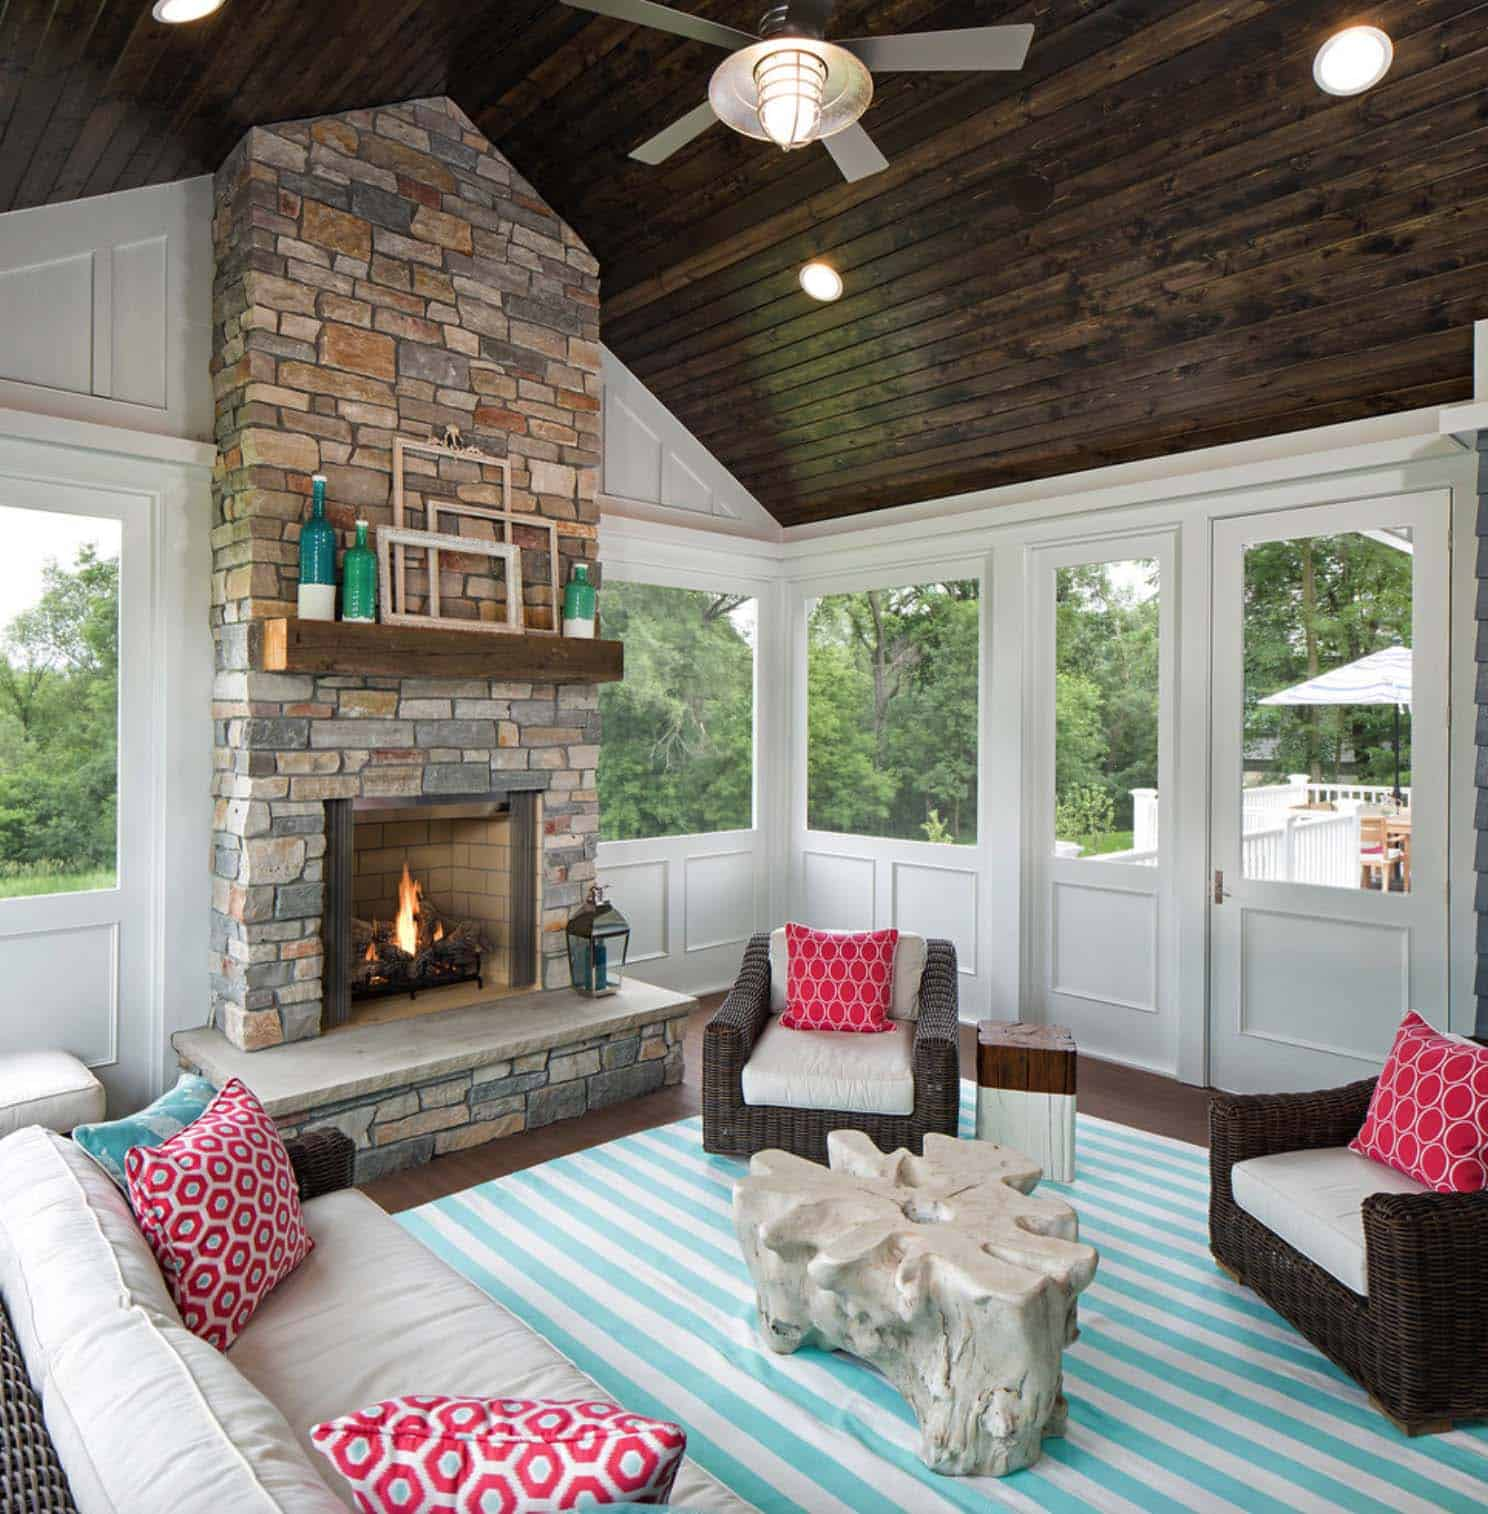 Attractive Screened Porch Design Ideas 25 1 Kindesign